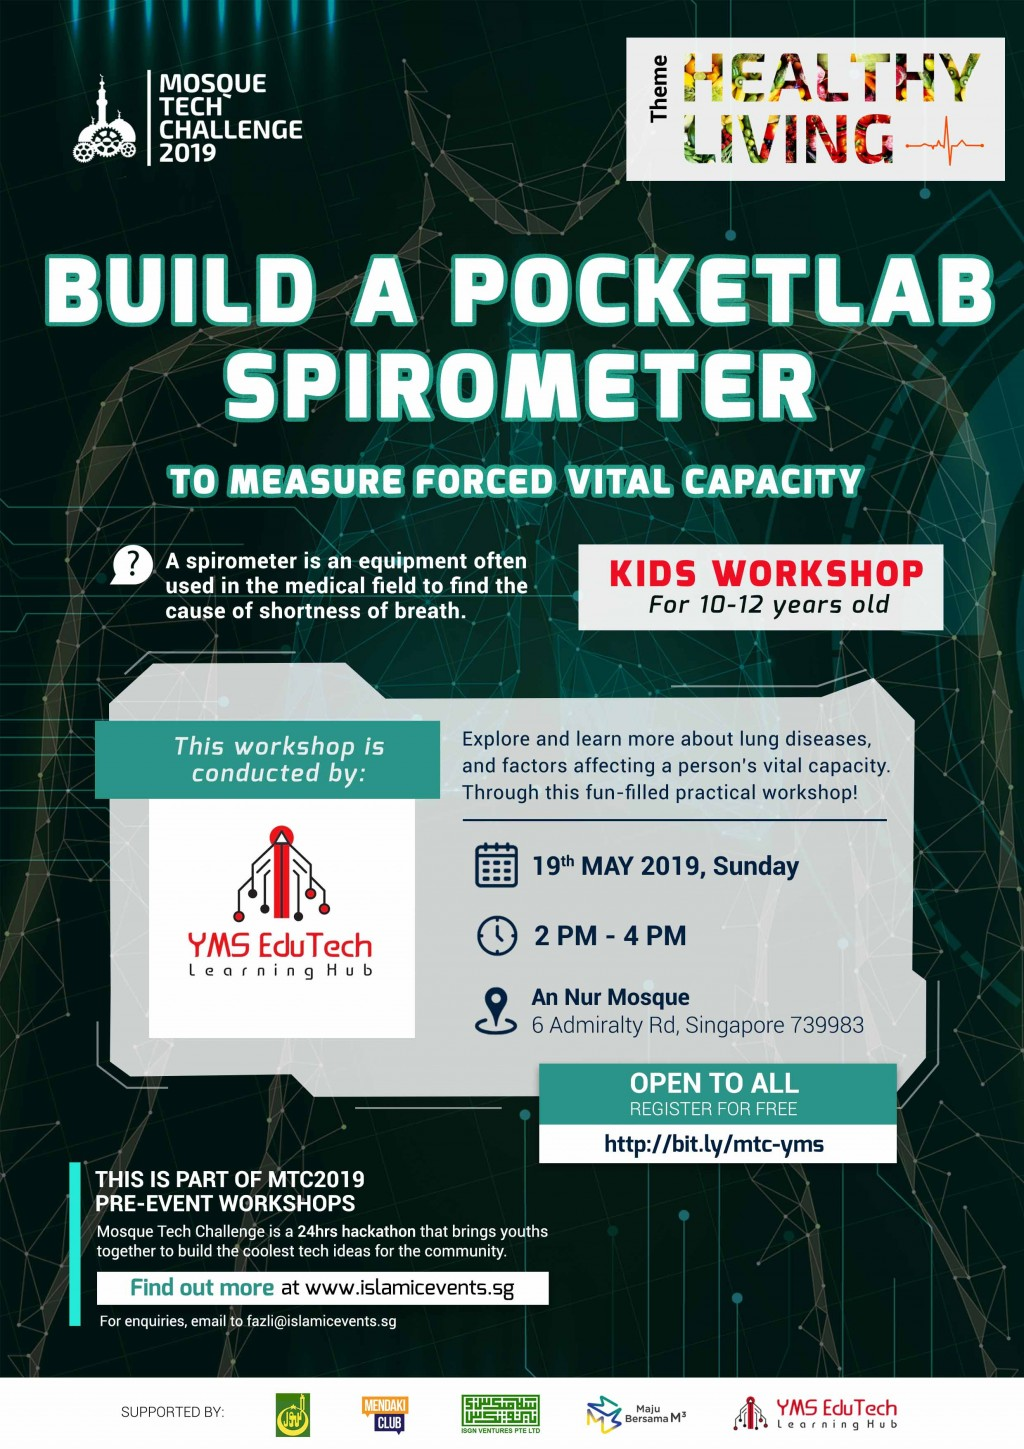 BUILD A POCKETLAB SPIROMETER